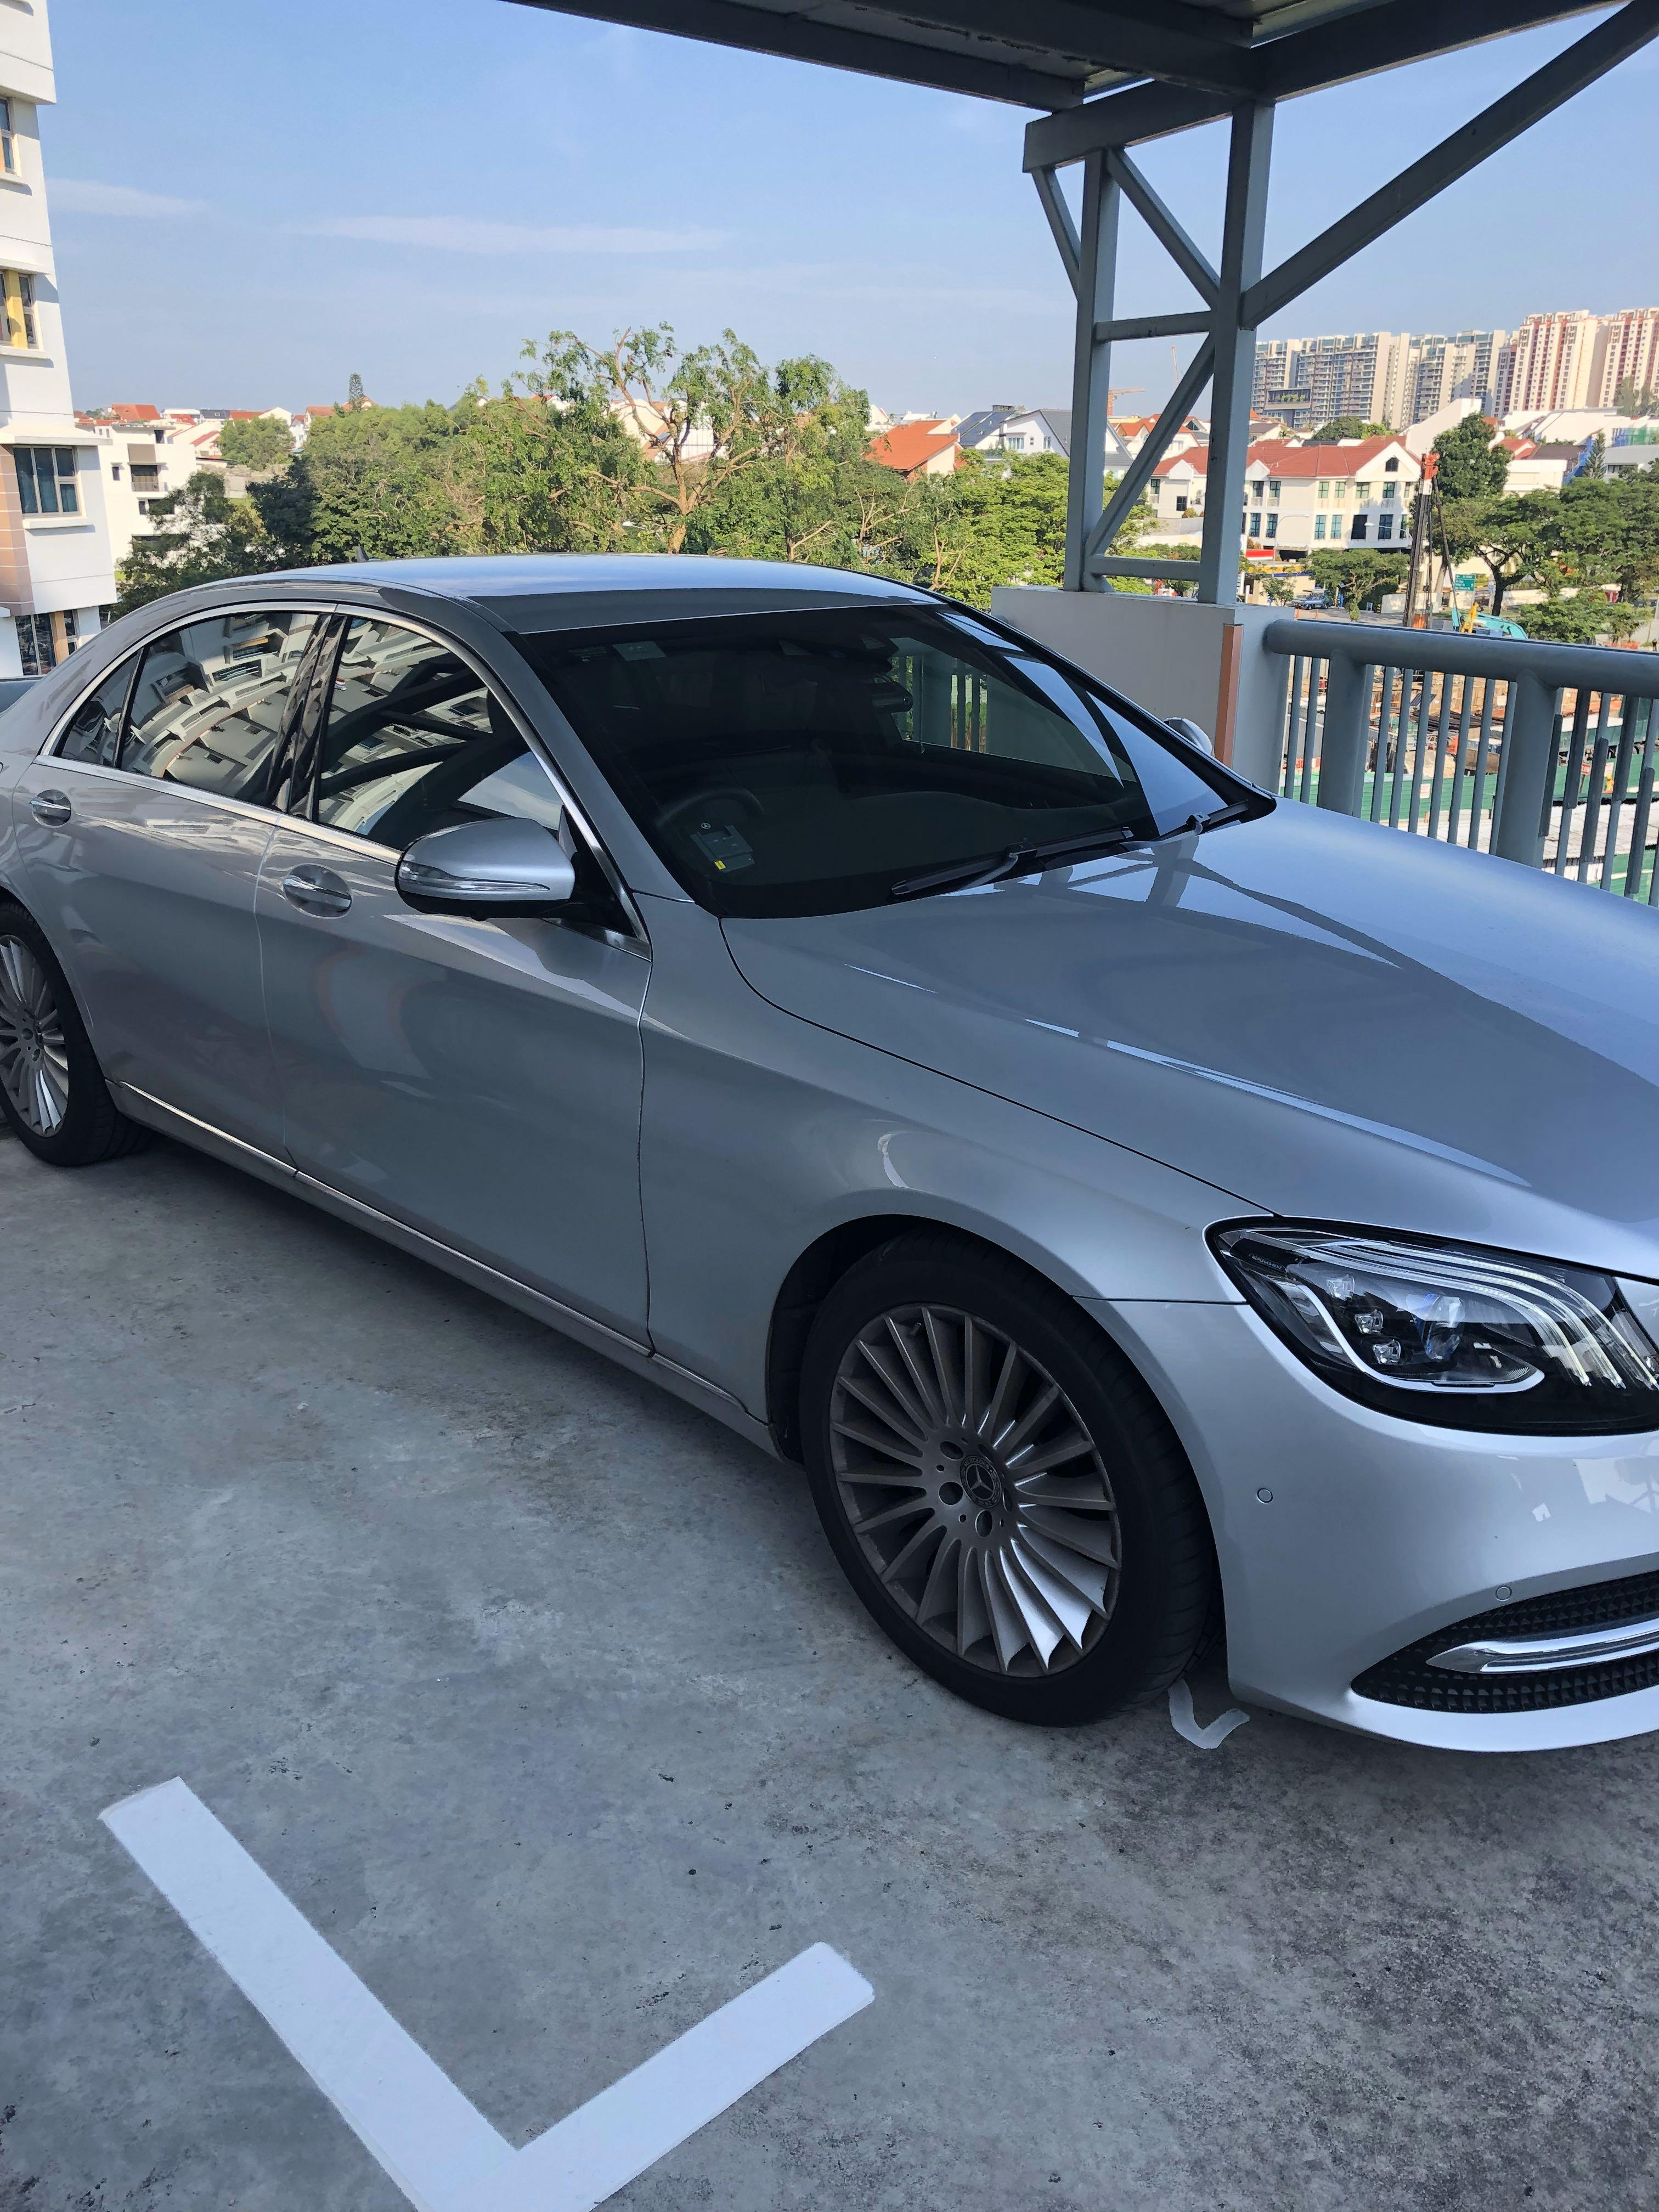 Mercedes Benz S320 (W222) Wedding Car Rental Latest Facelift. Only 1 in market.